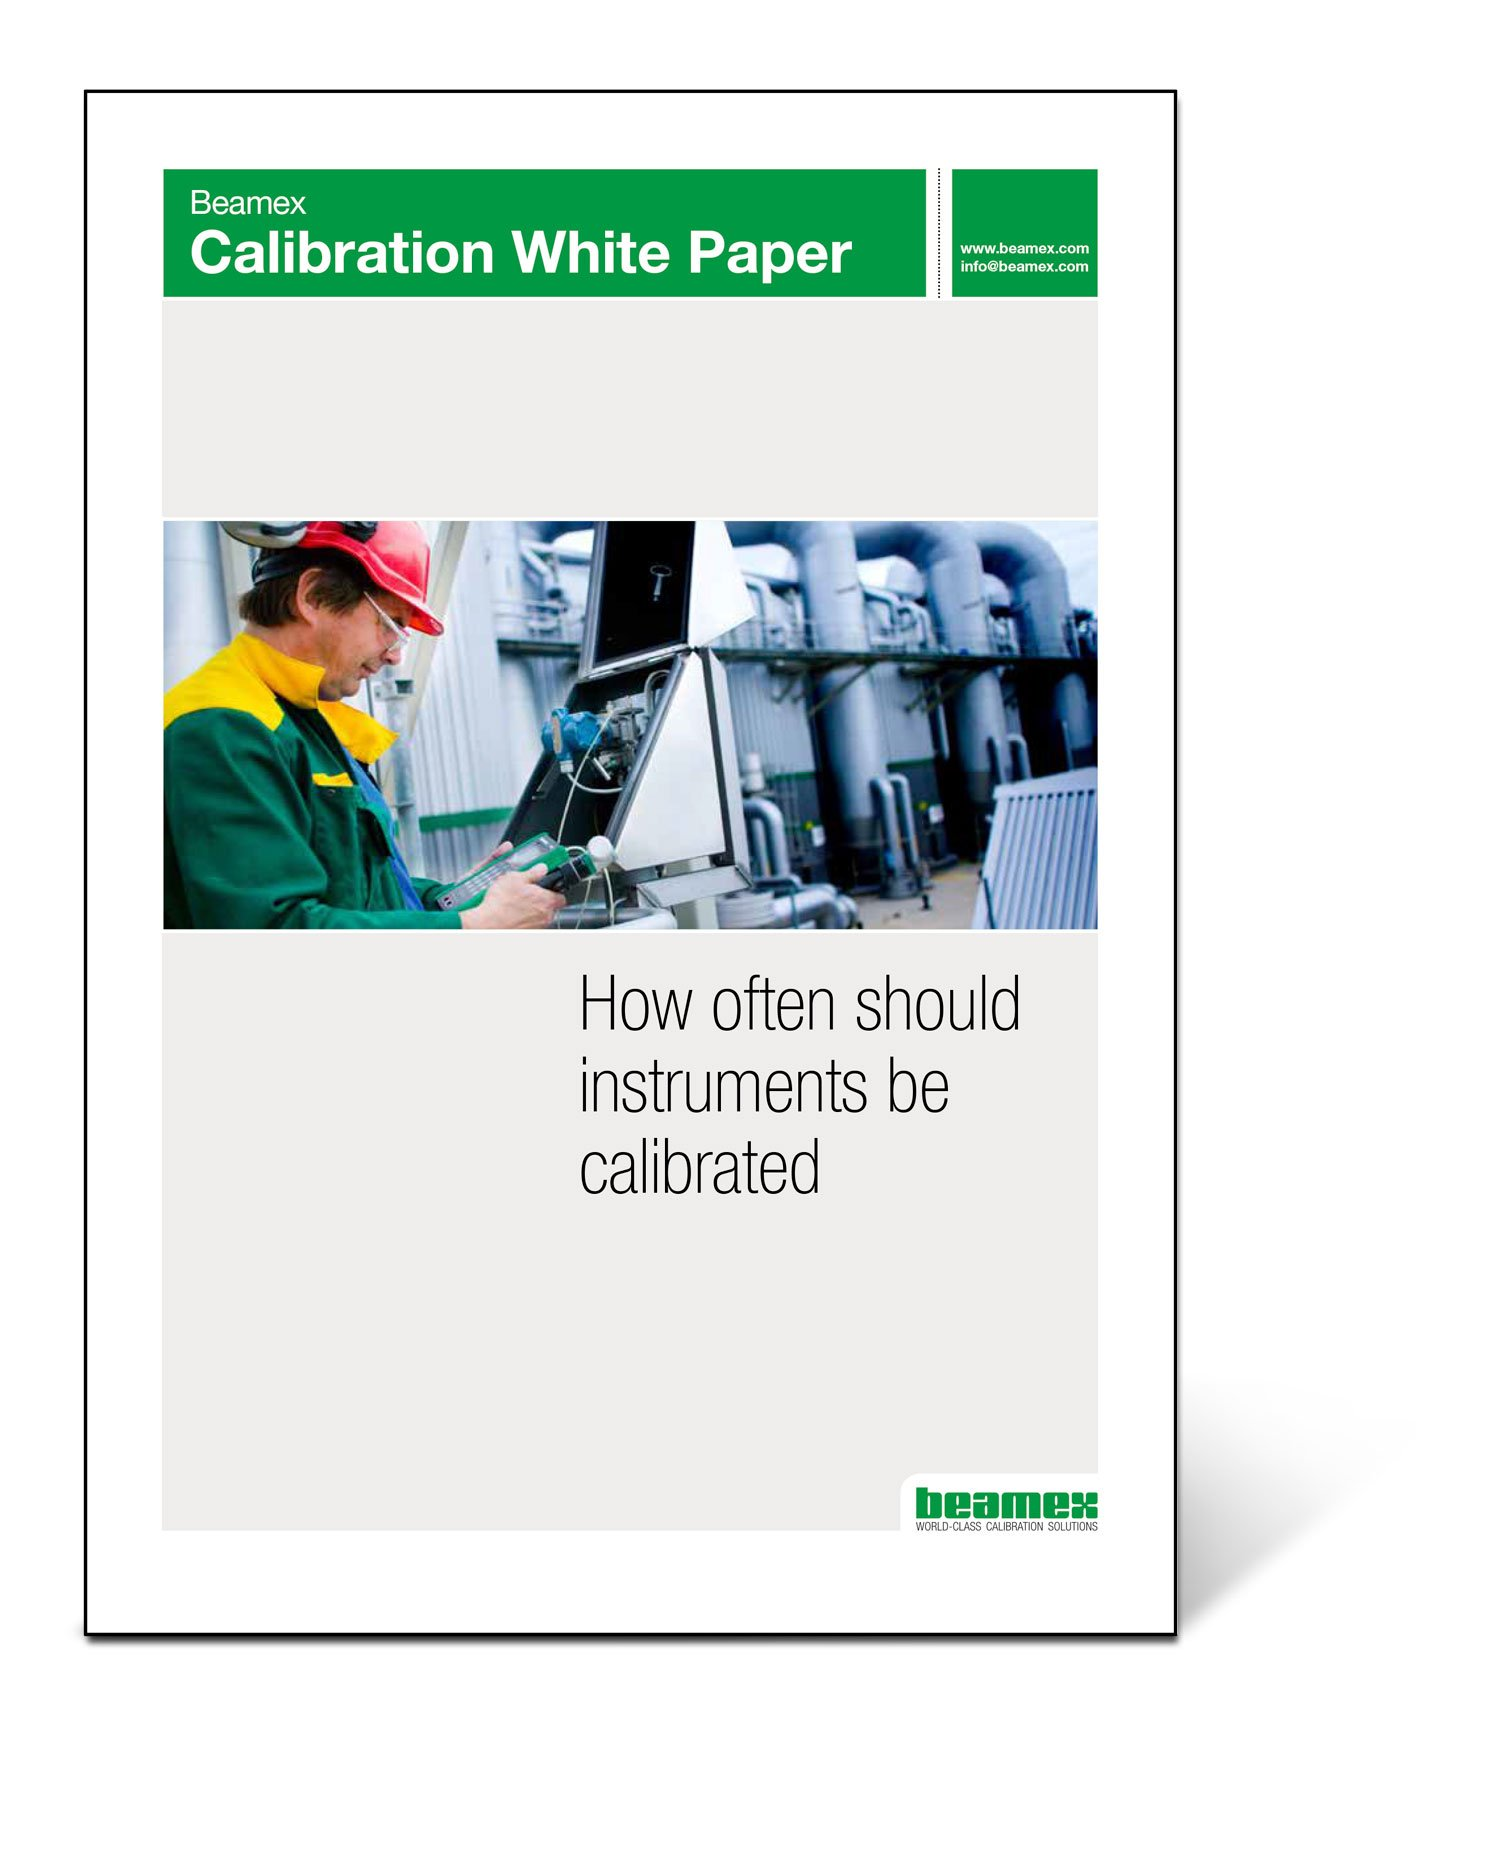 Beamex Calibration White Paper - How often should instruments be calibrated?